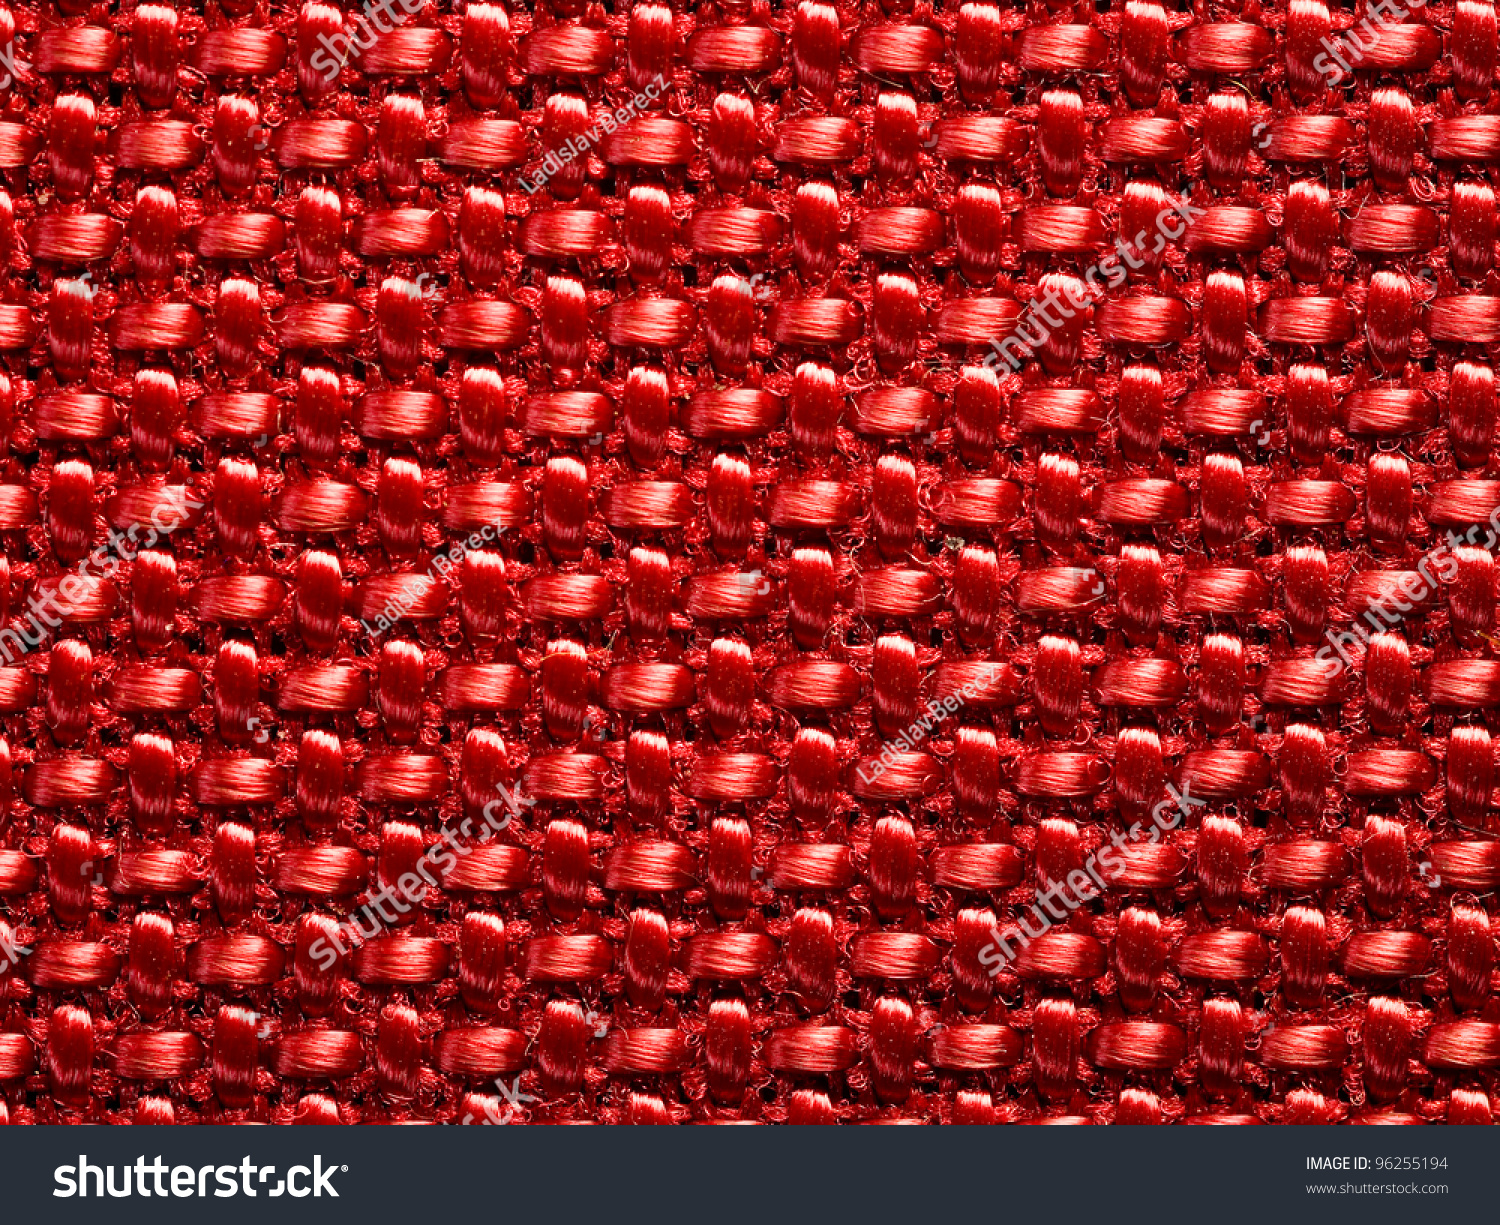 Red Carbon Fiber Texture Stock Photo 96255194 : Shutterstock